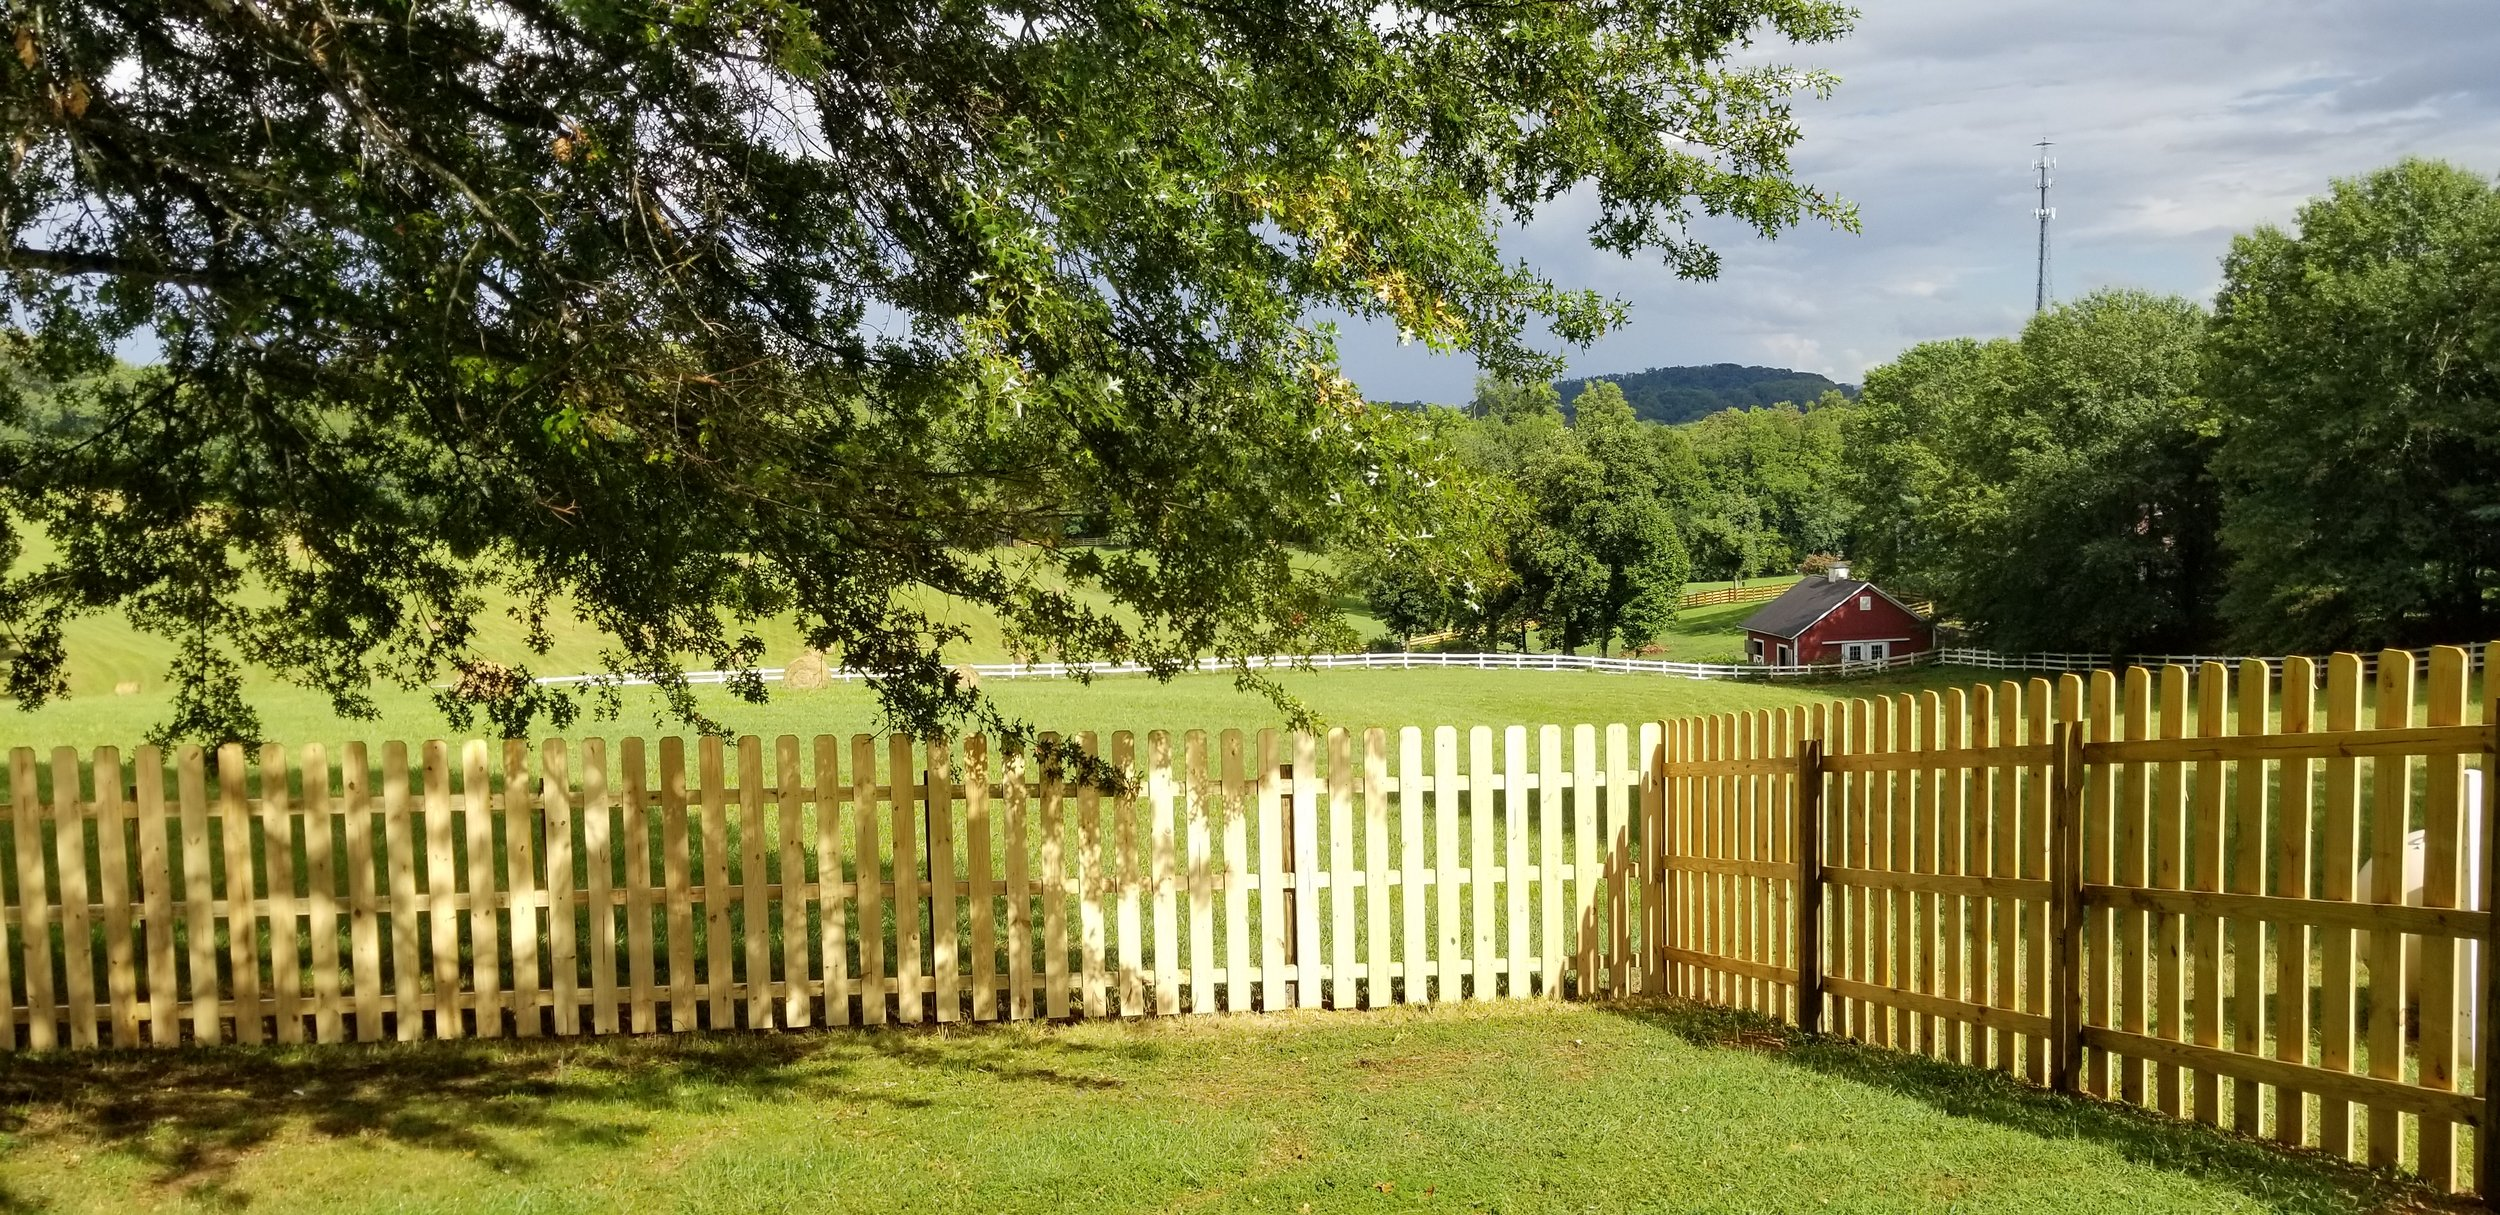 New 6 Foot Wood Fence (Jonesborough, Tn)